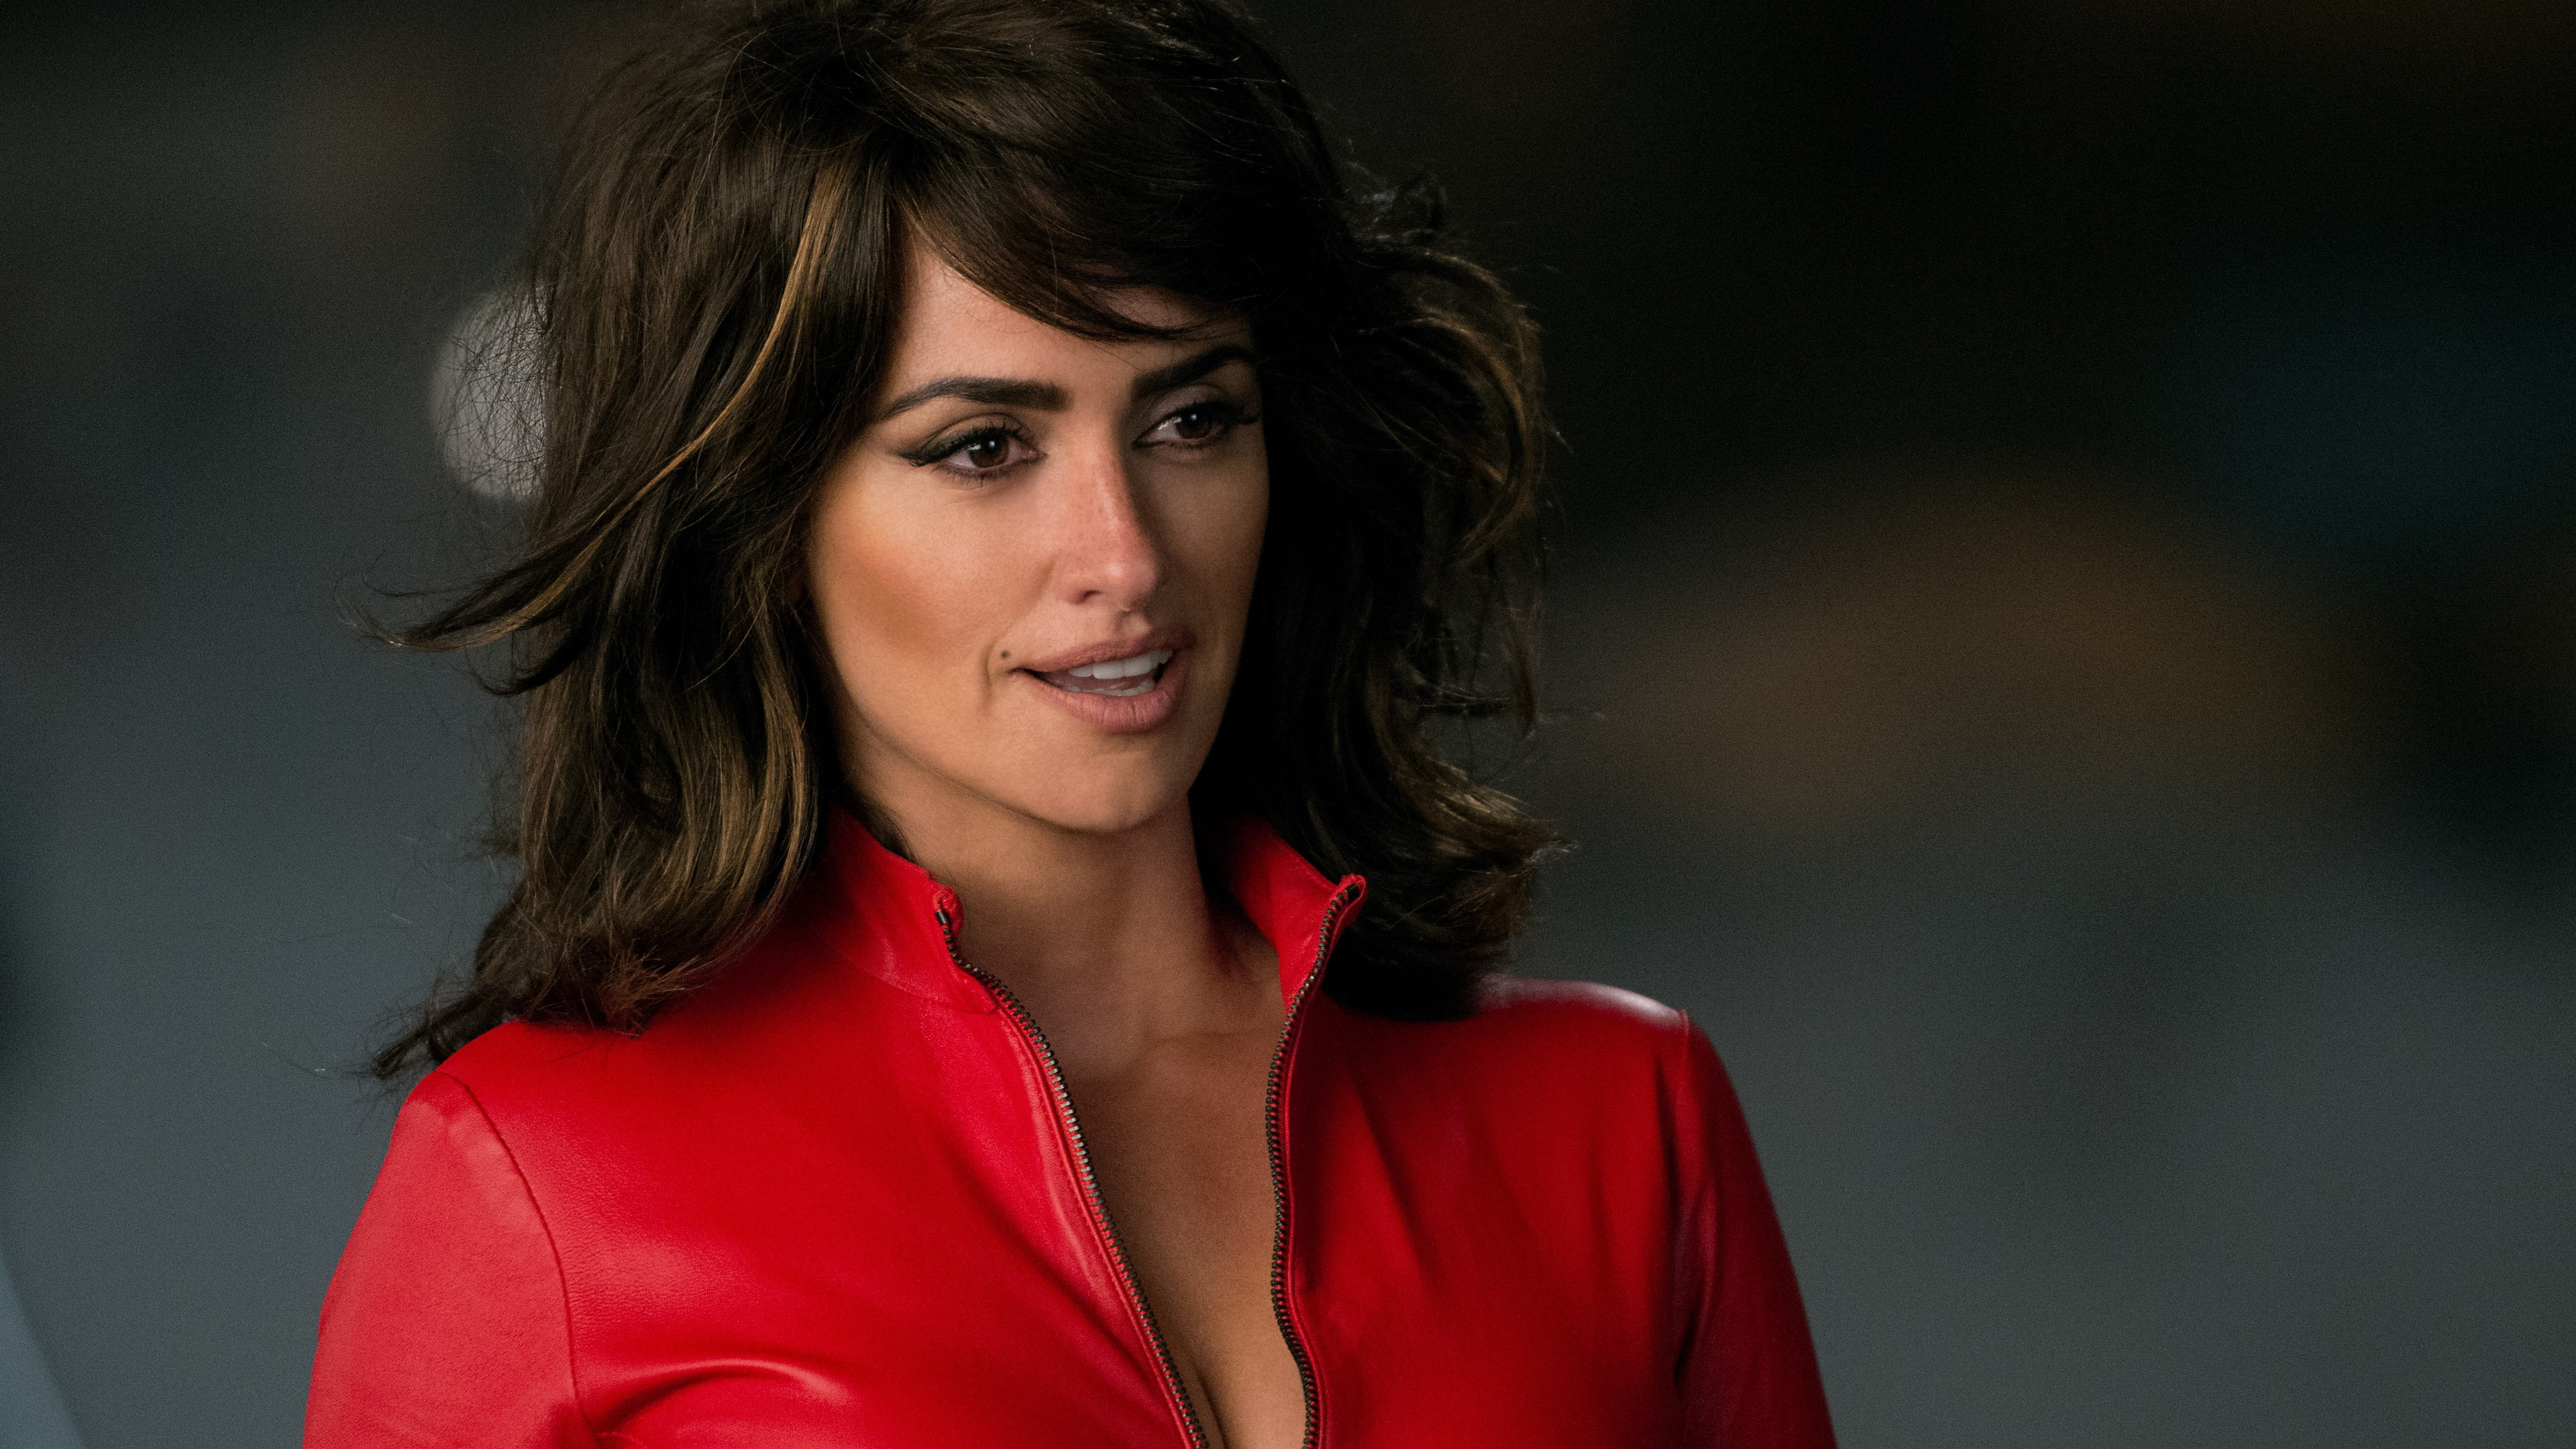 Penelope Cruz Sexy In Zoolander Movie Wallpaper | Movies HD Wallpapers Penelope Cruz